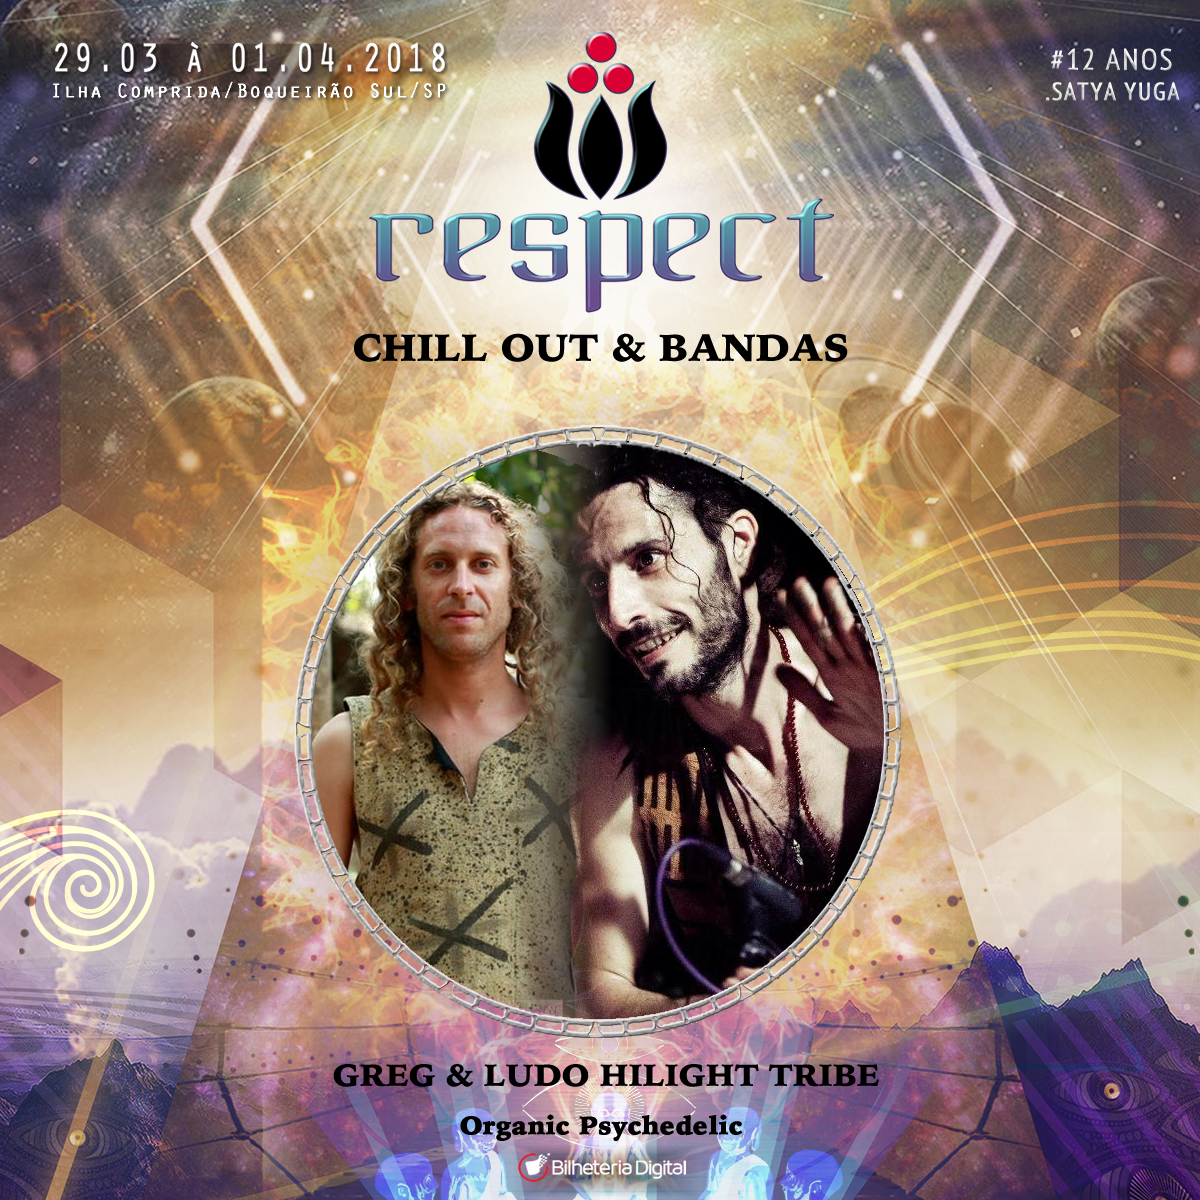 Greg & ludo – hilight tribe @ Artista Confirmado Respect Festival 2018